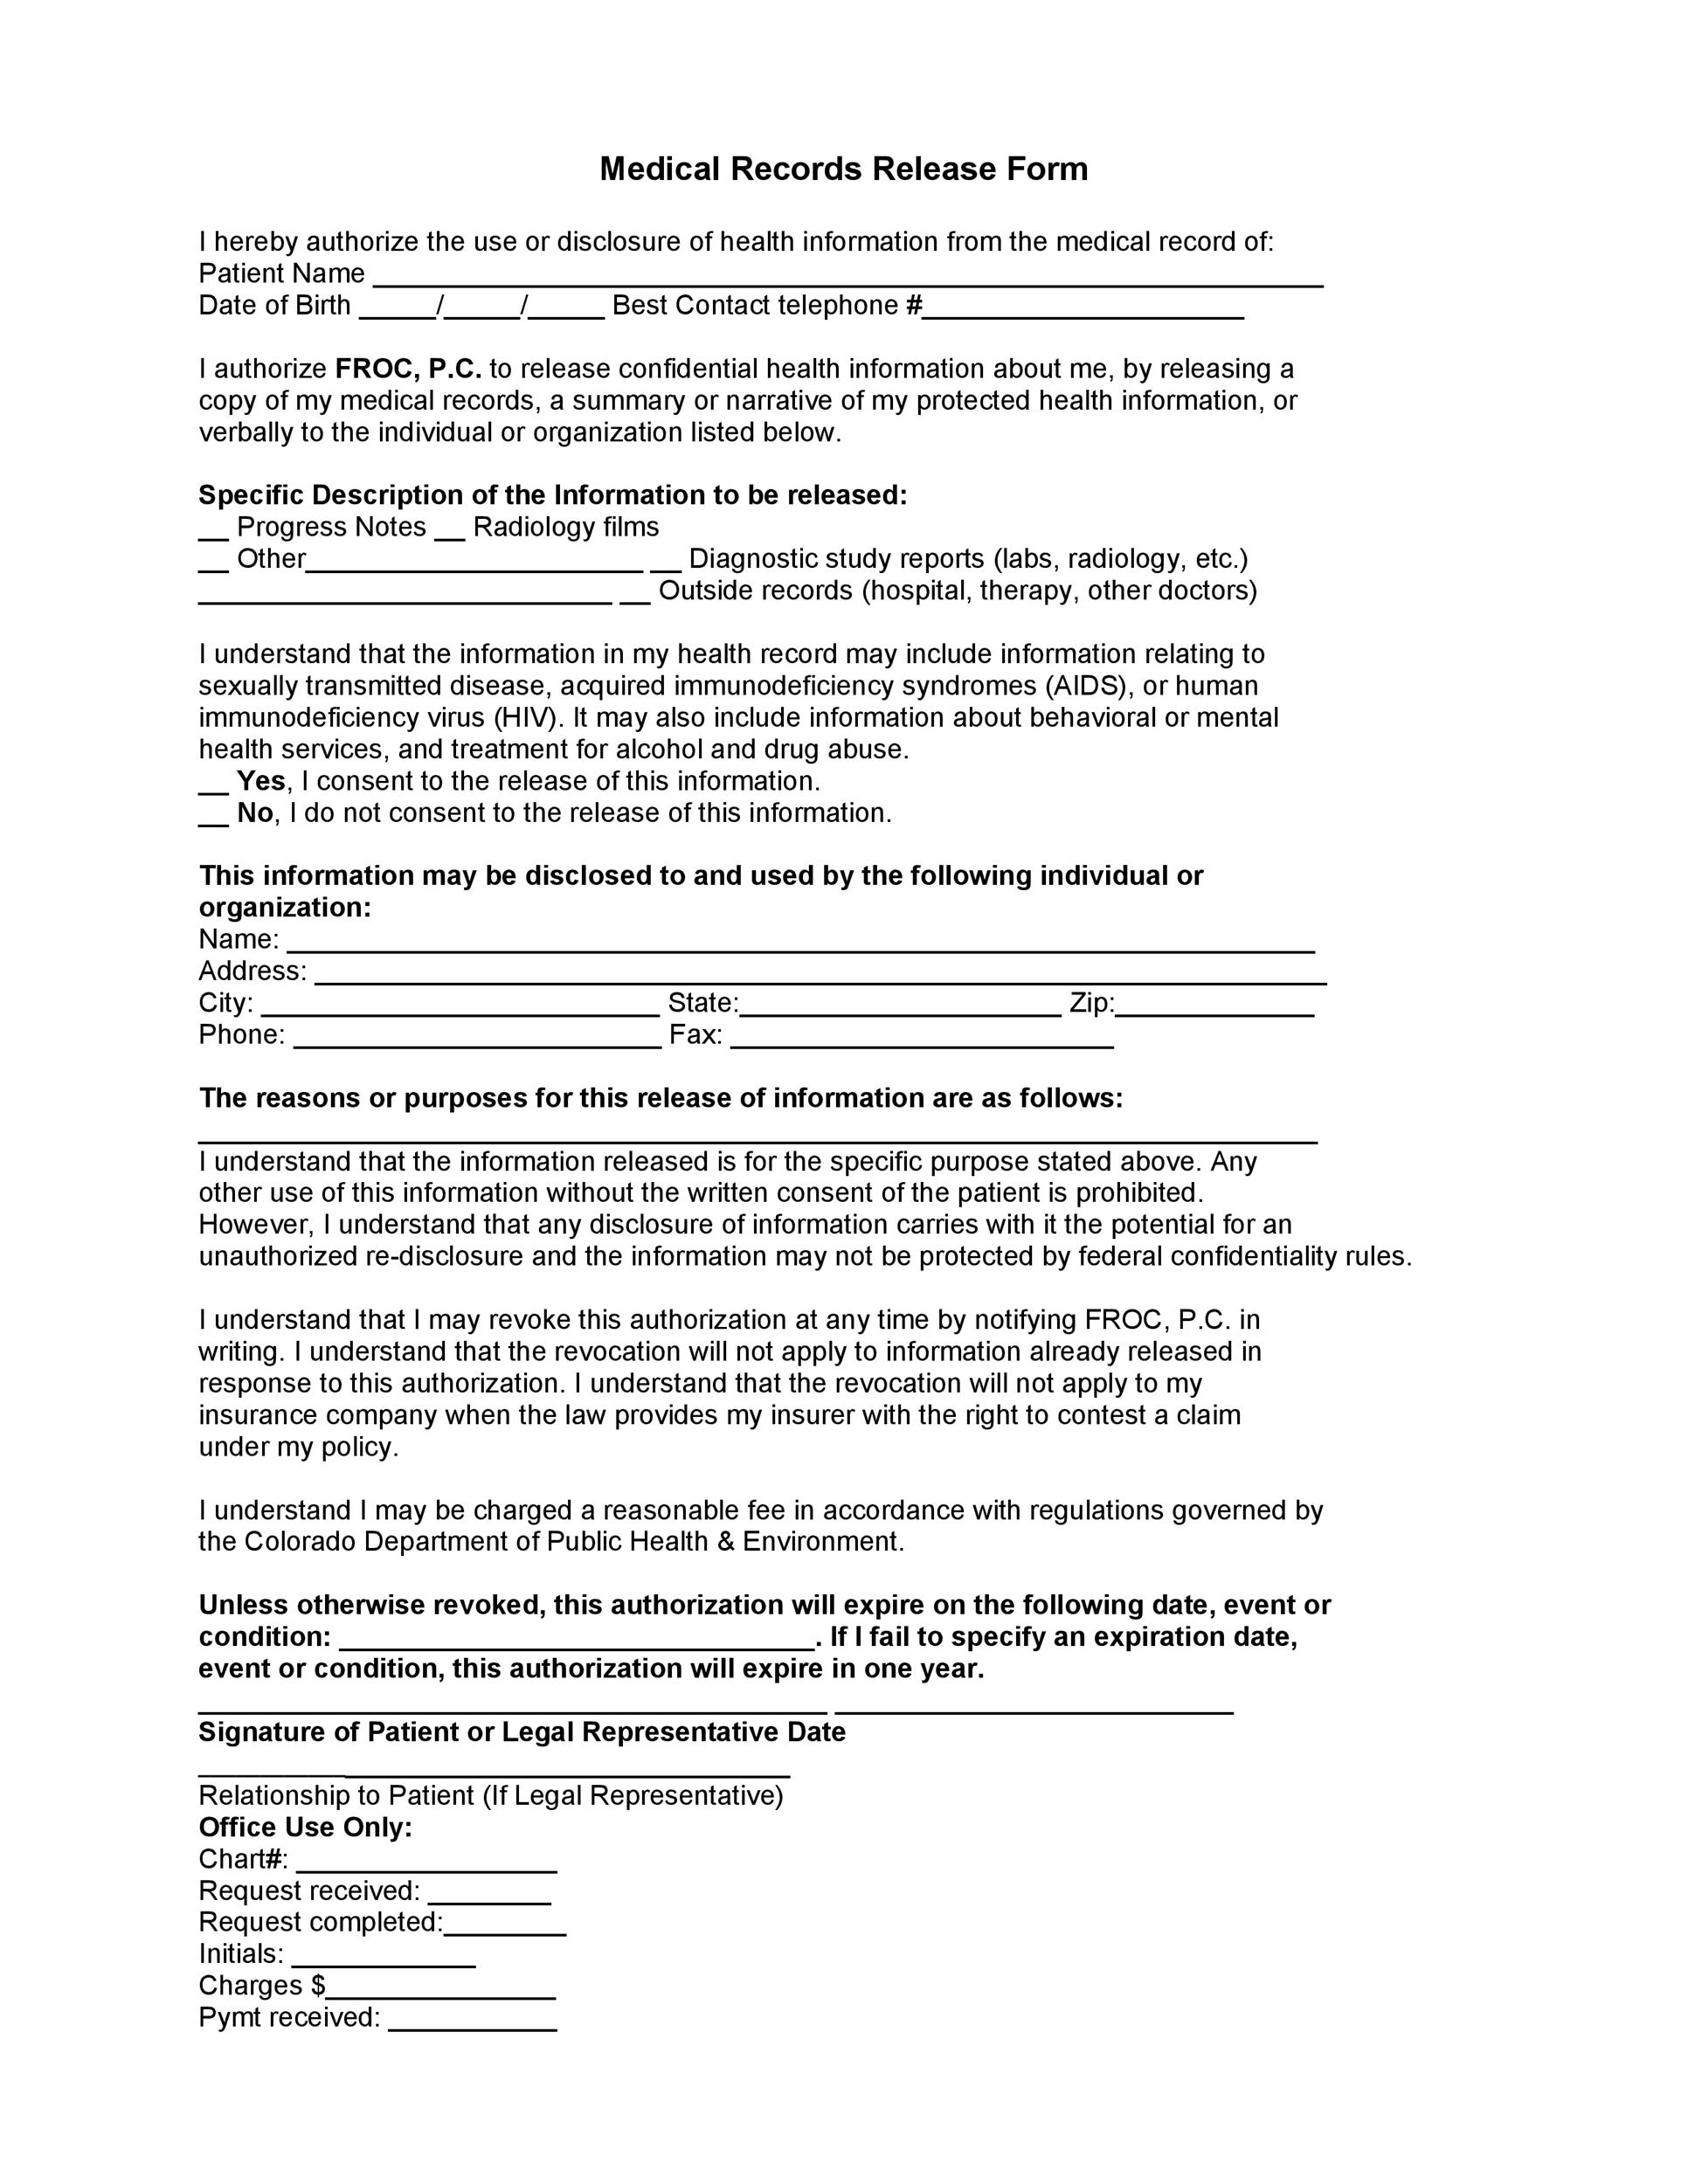 30+ Medical Release Form Templates - Template Lab on dme medicare audit checklist forms, find 4256 da forms, stewart title ny forms, doctors progress note template forms, printable nursing sbar forms, printable family history forms, call notes forms, medicare medical necessity forms, patient care forms, nursing notes forms, printable patient assessment forms, nursing assessment forms, tax forms,